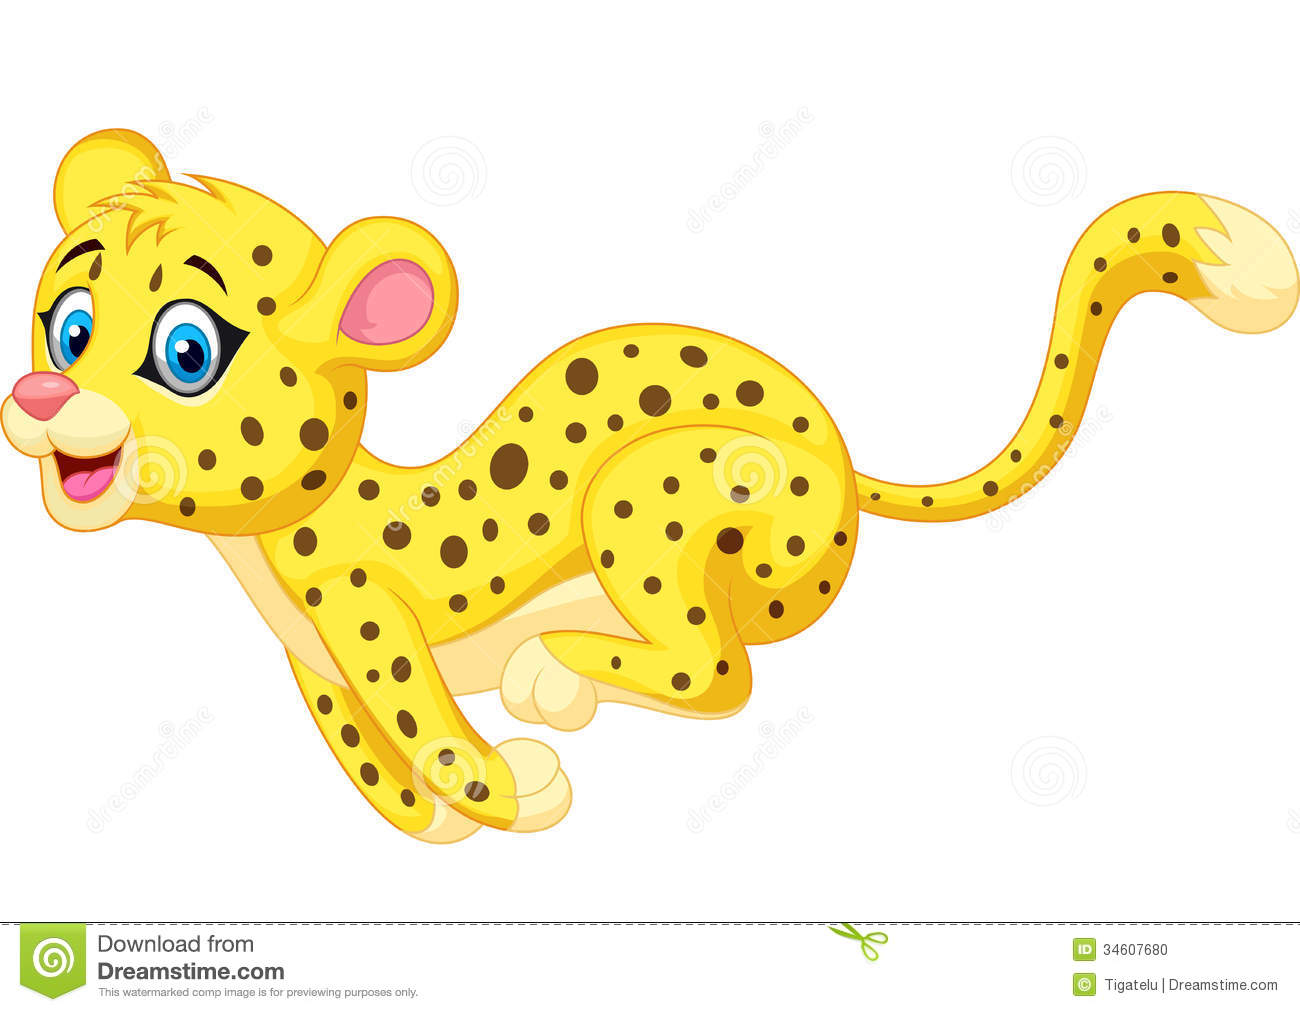 Cheetah cartoon running stock vector. Illustration of play ...